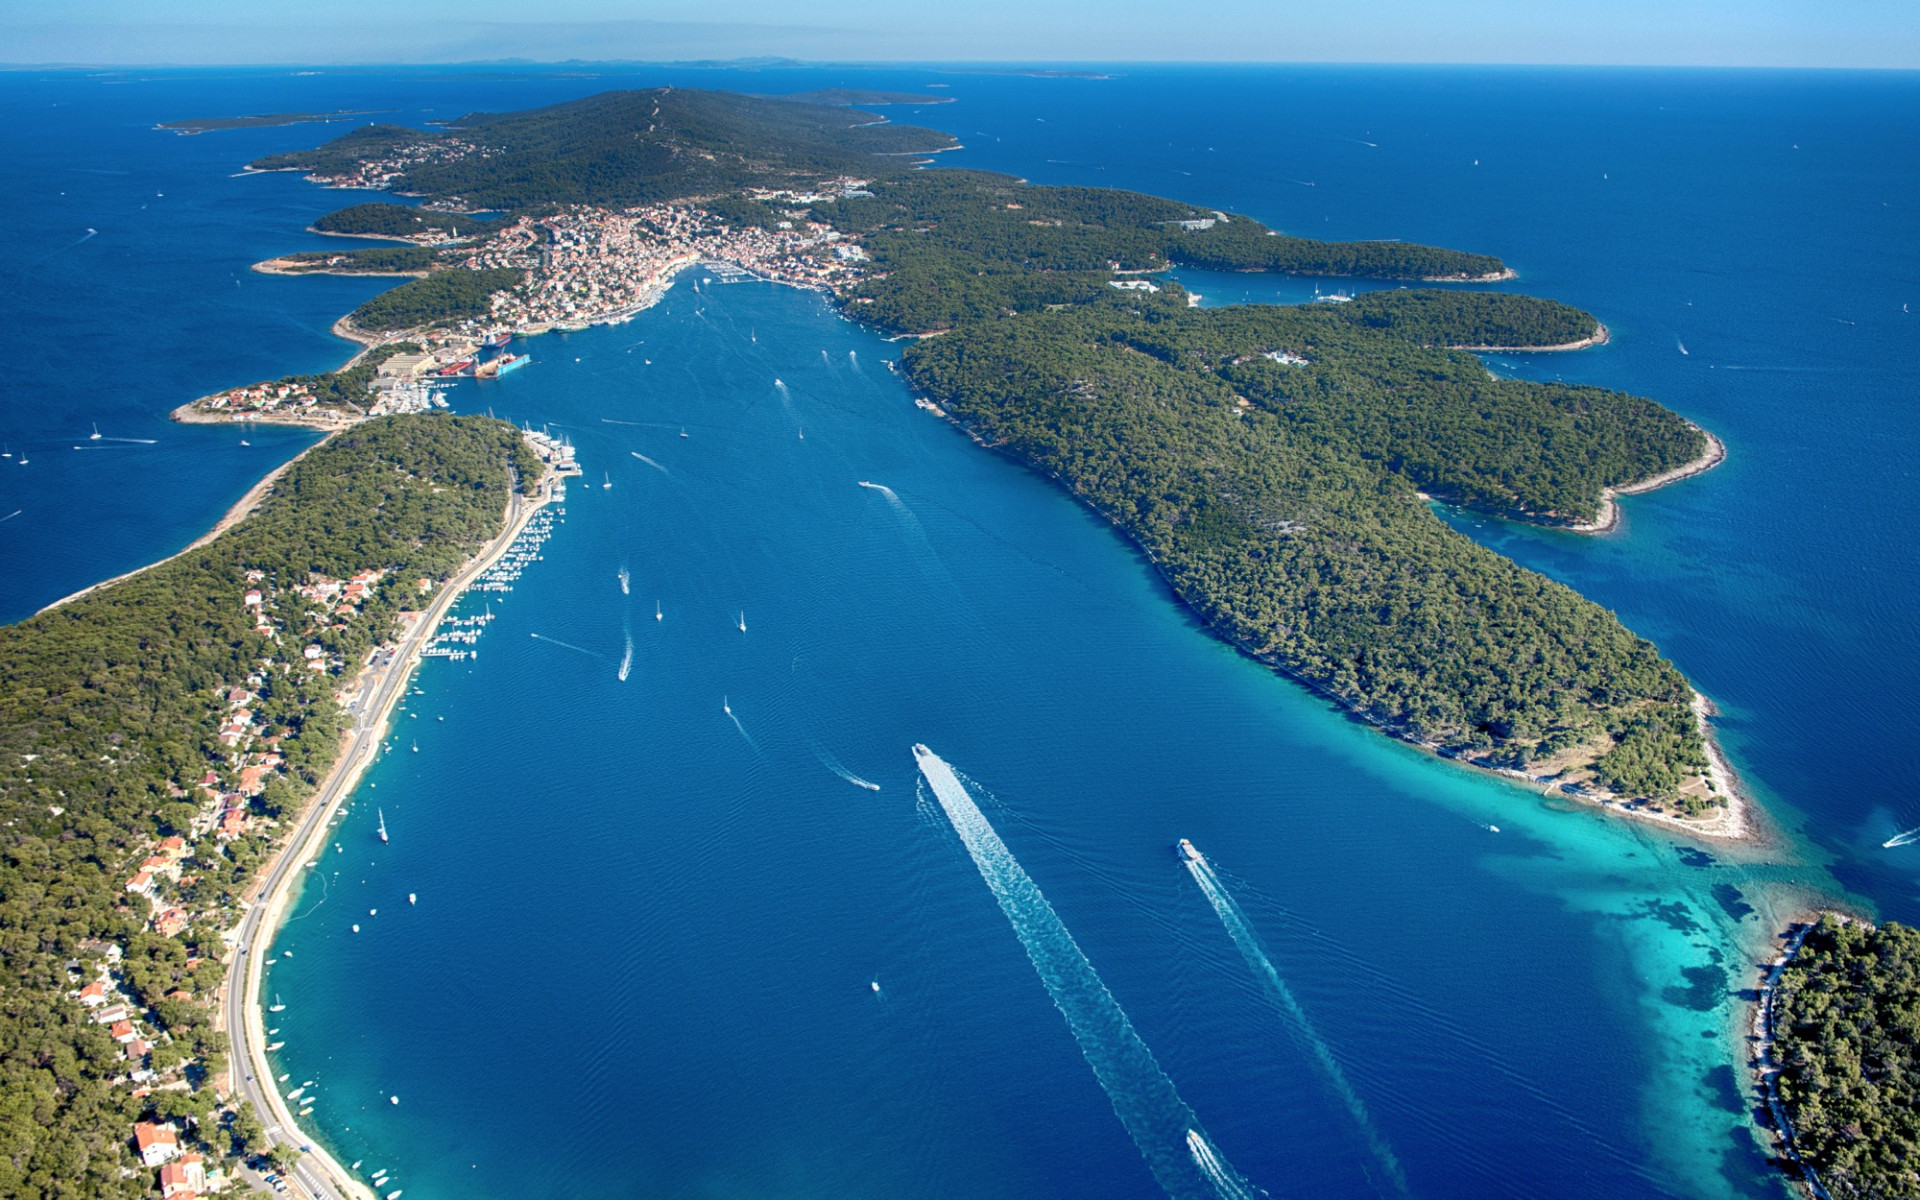 Save 30% on luxury accommodation on the island of vitality, Vacation villas, apartments and hotels in Croatia - Charming Croatia